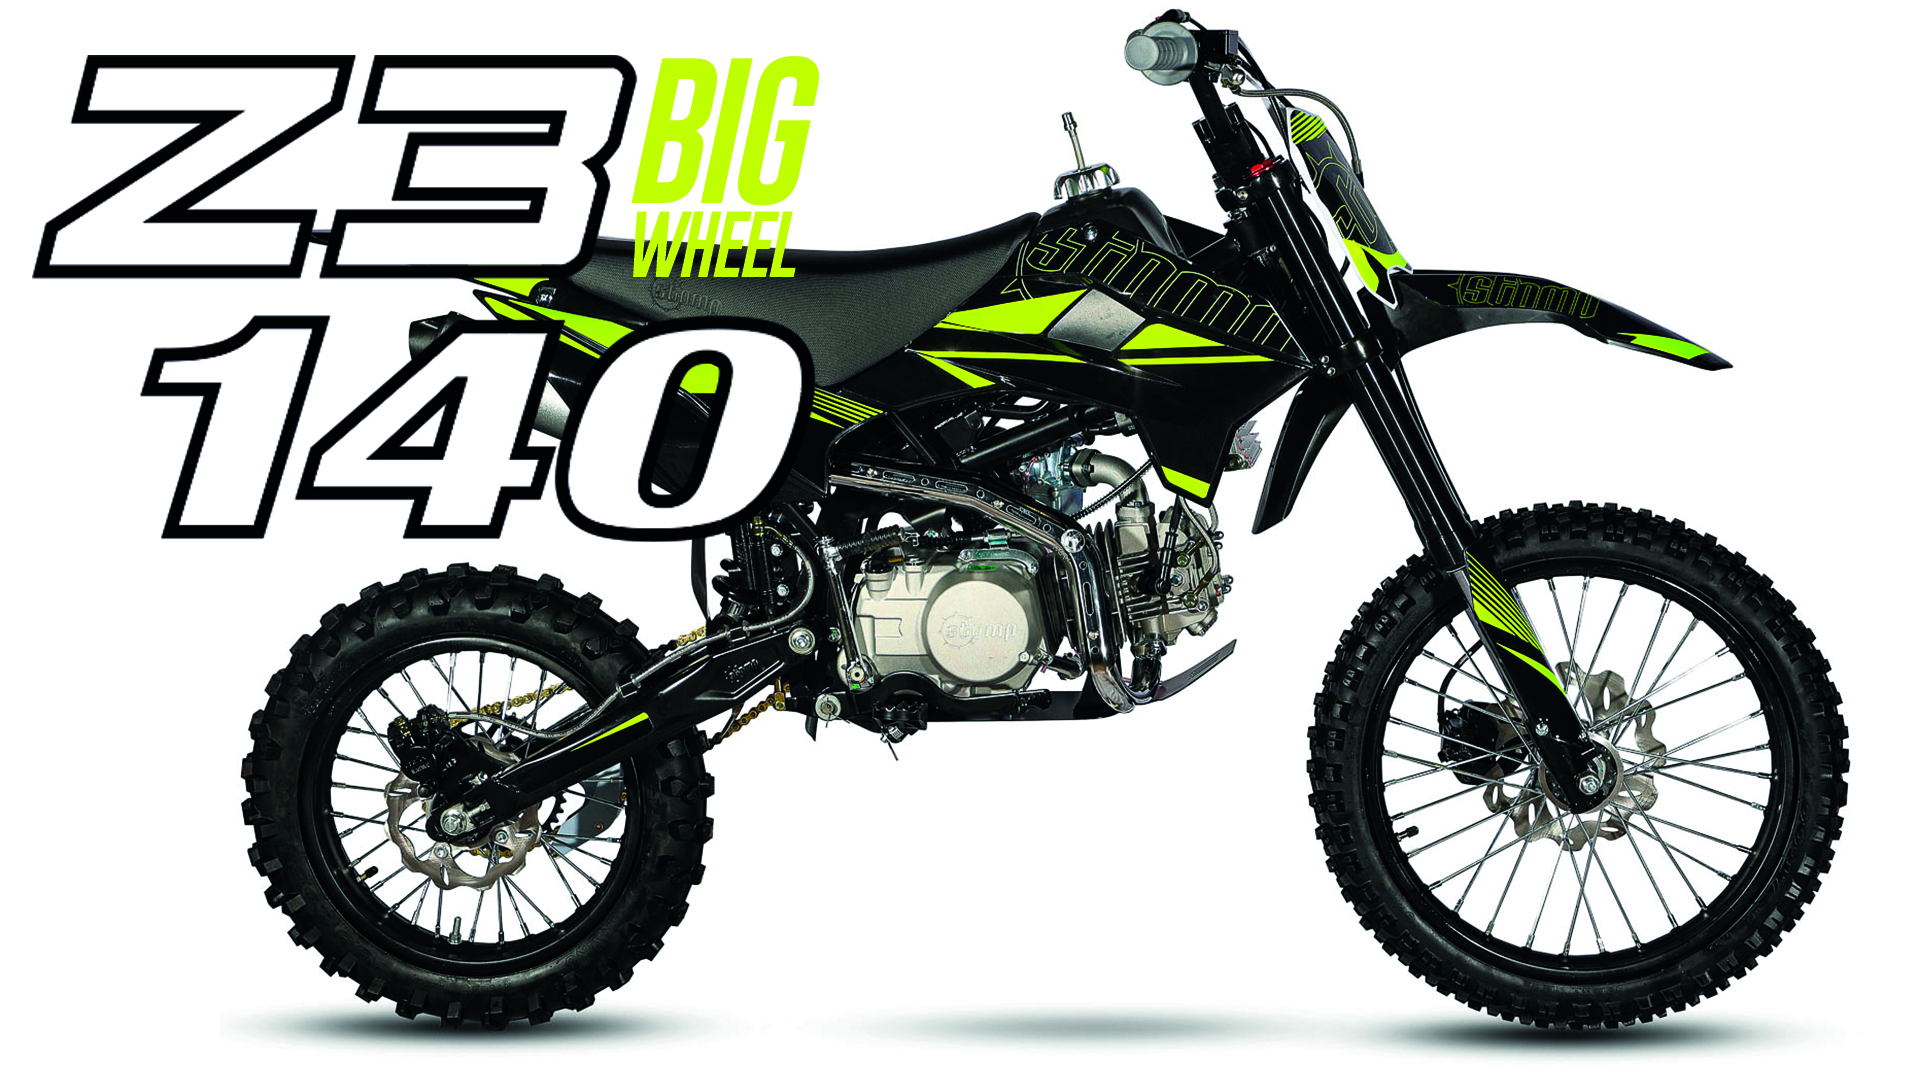 Z3 Big Wheel 140 cc pit bike